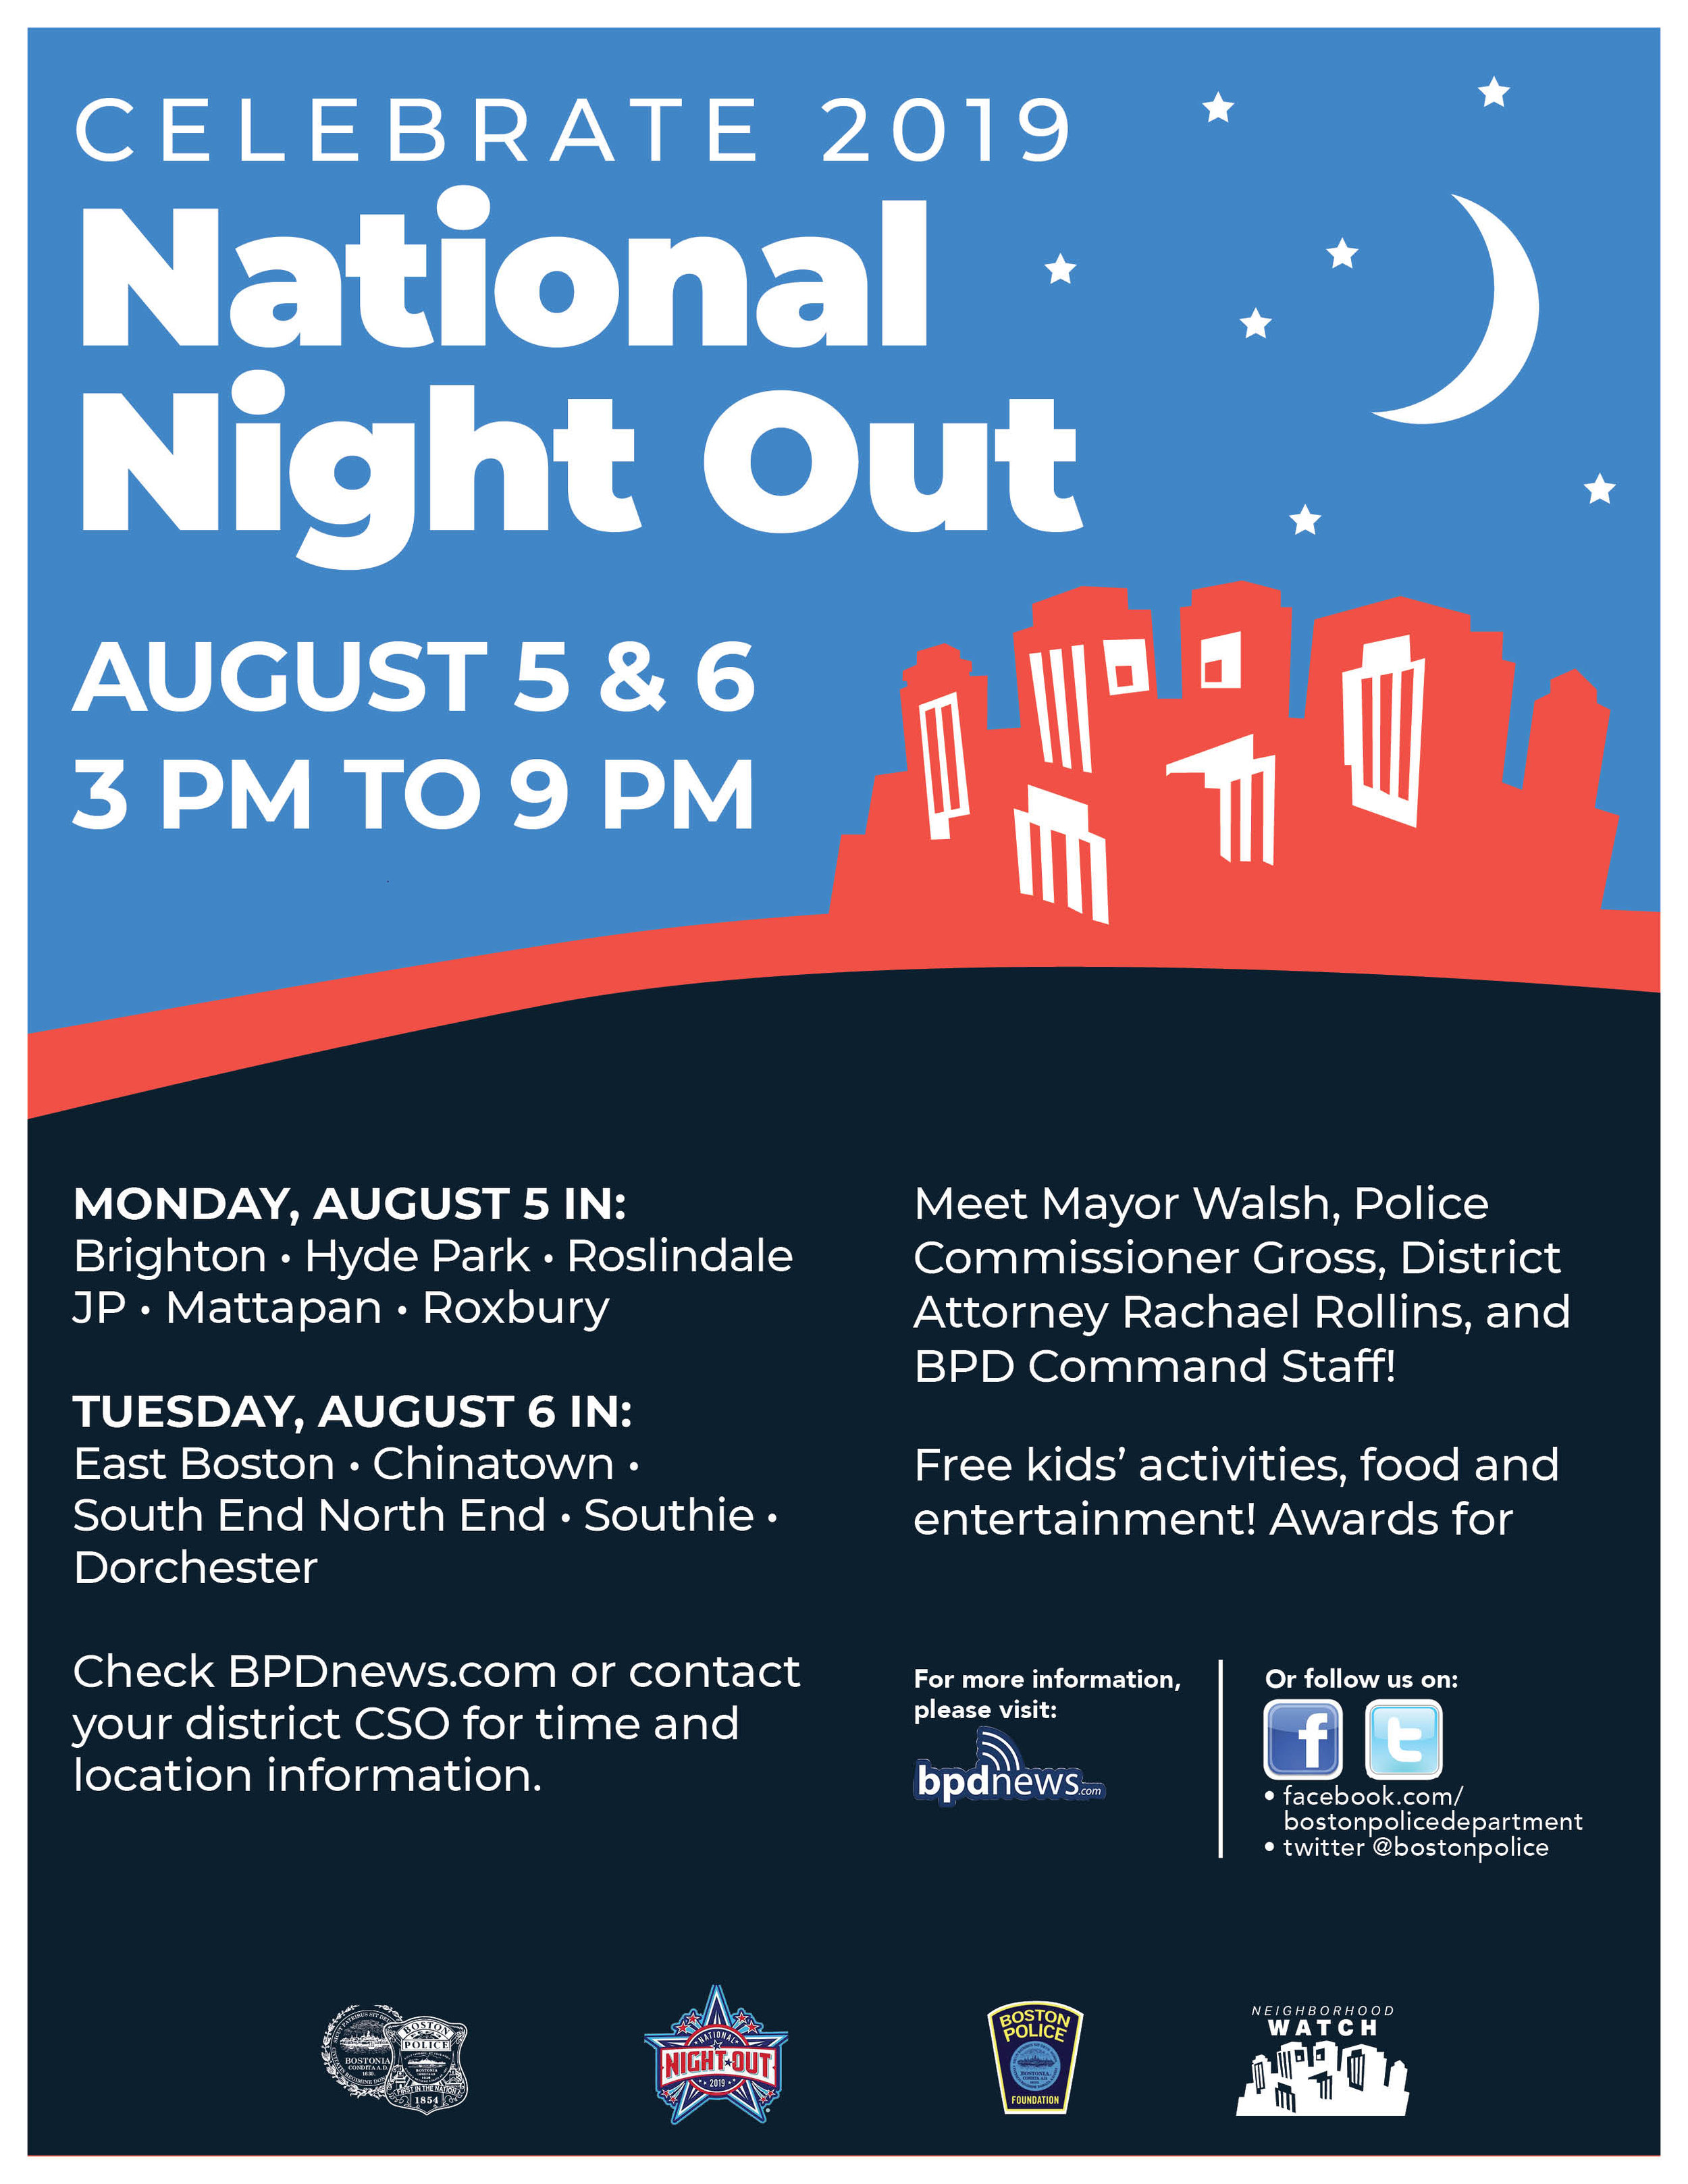 2019 National Night Out 8x11 (1) (1).jpg